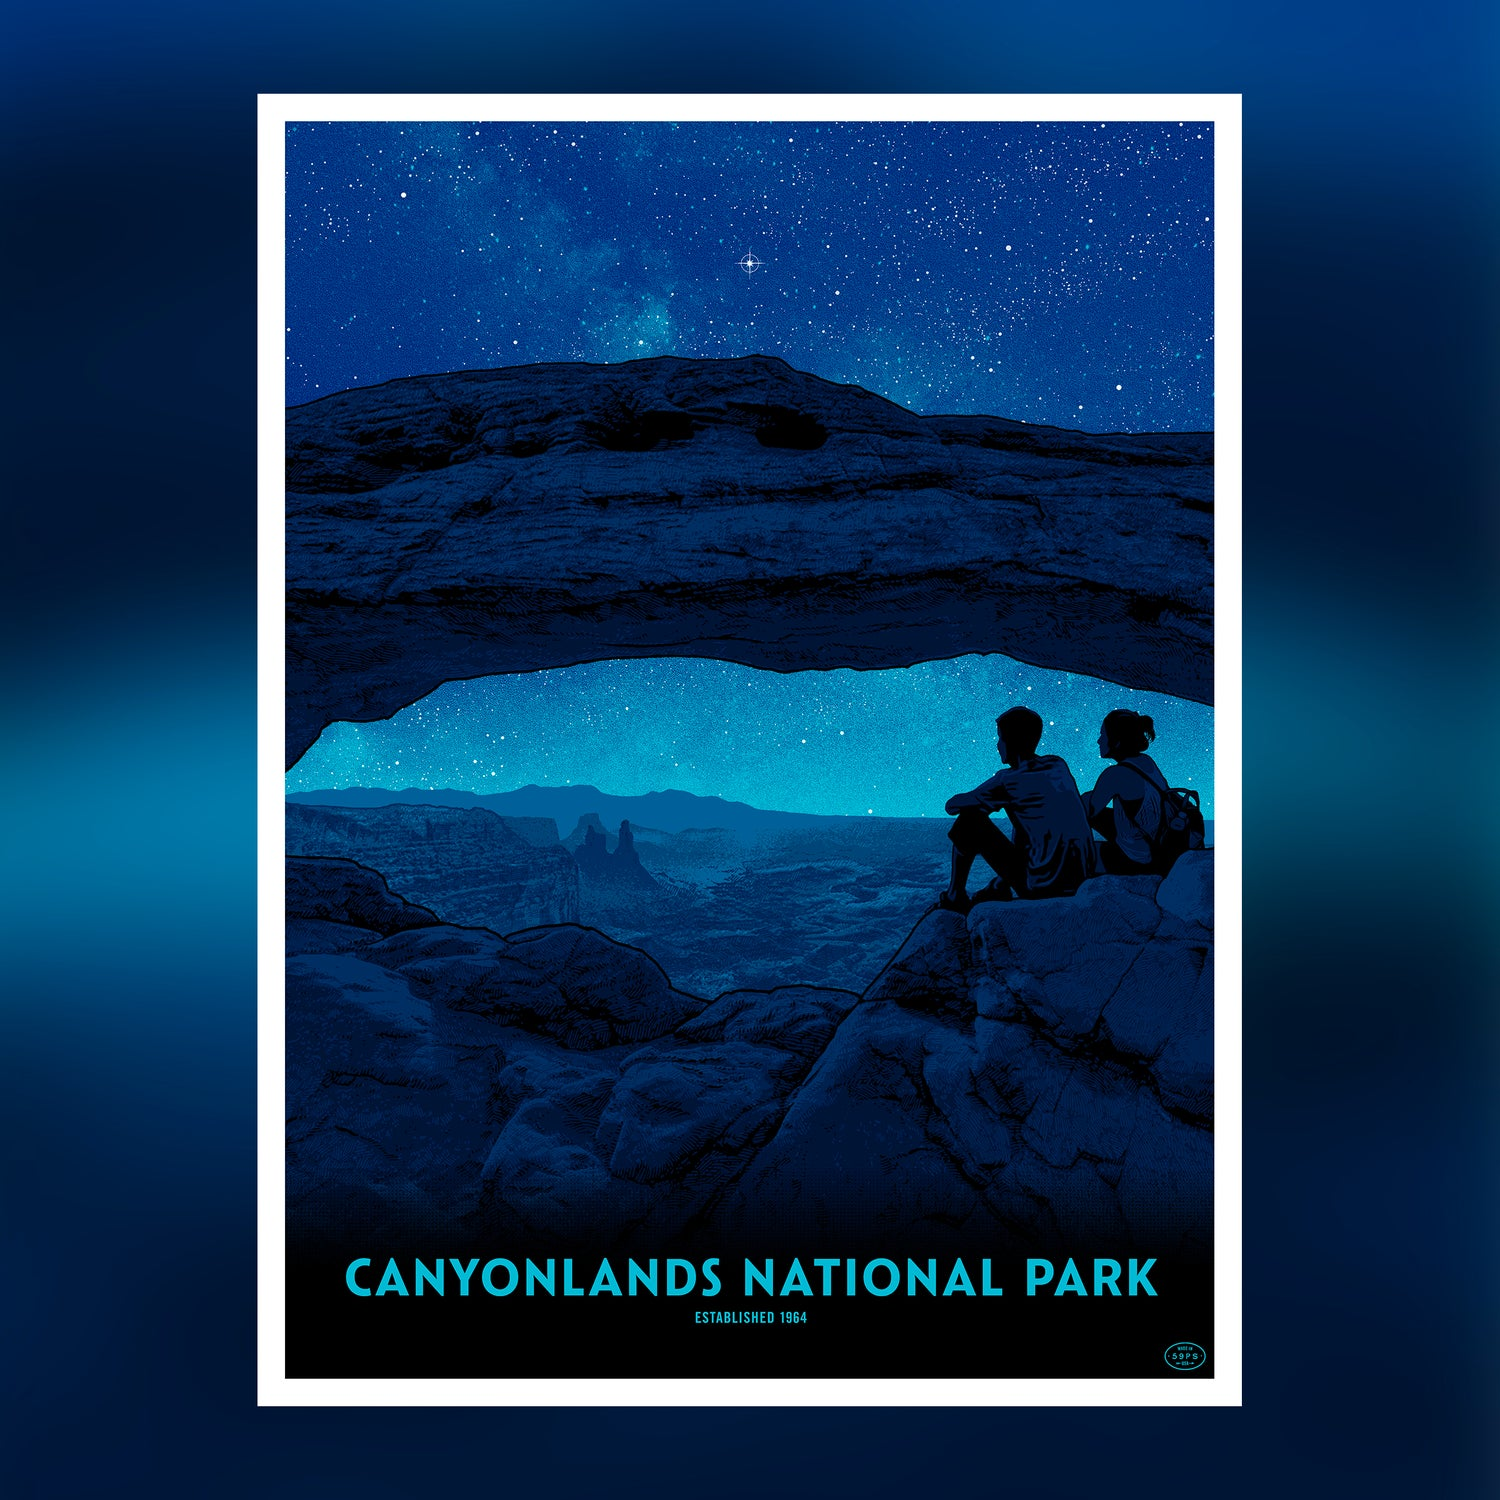 Image of Canyonlands National Park